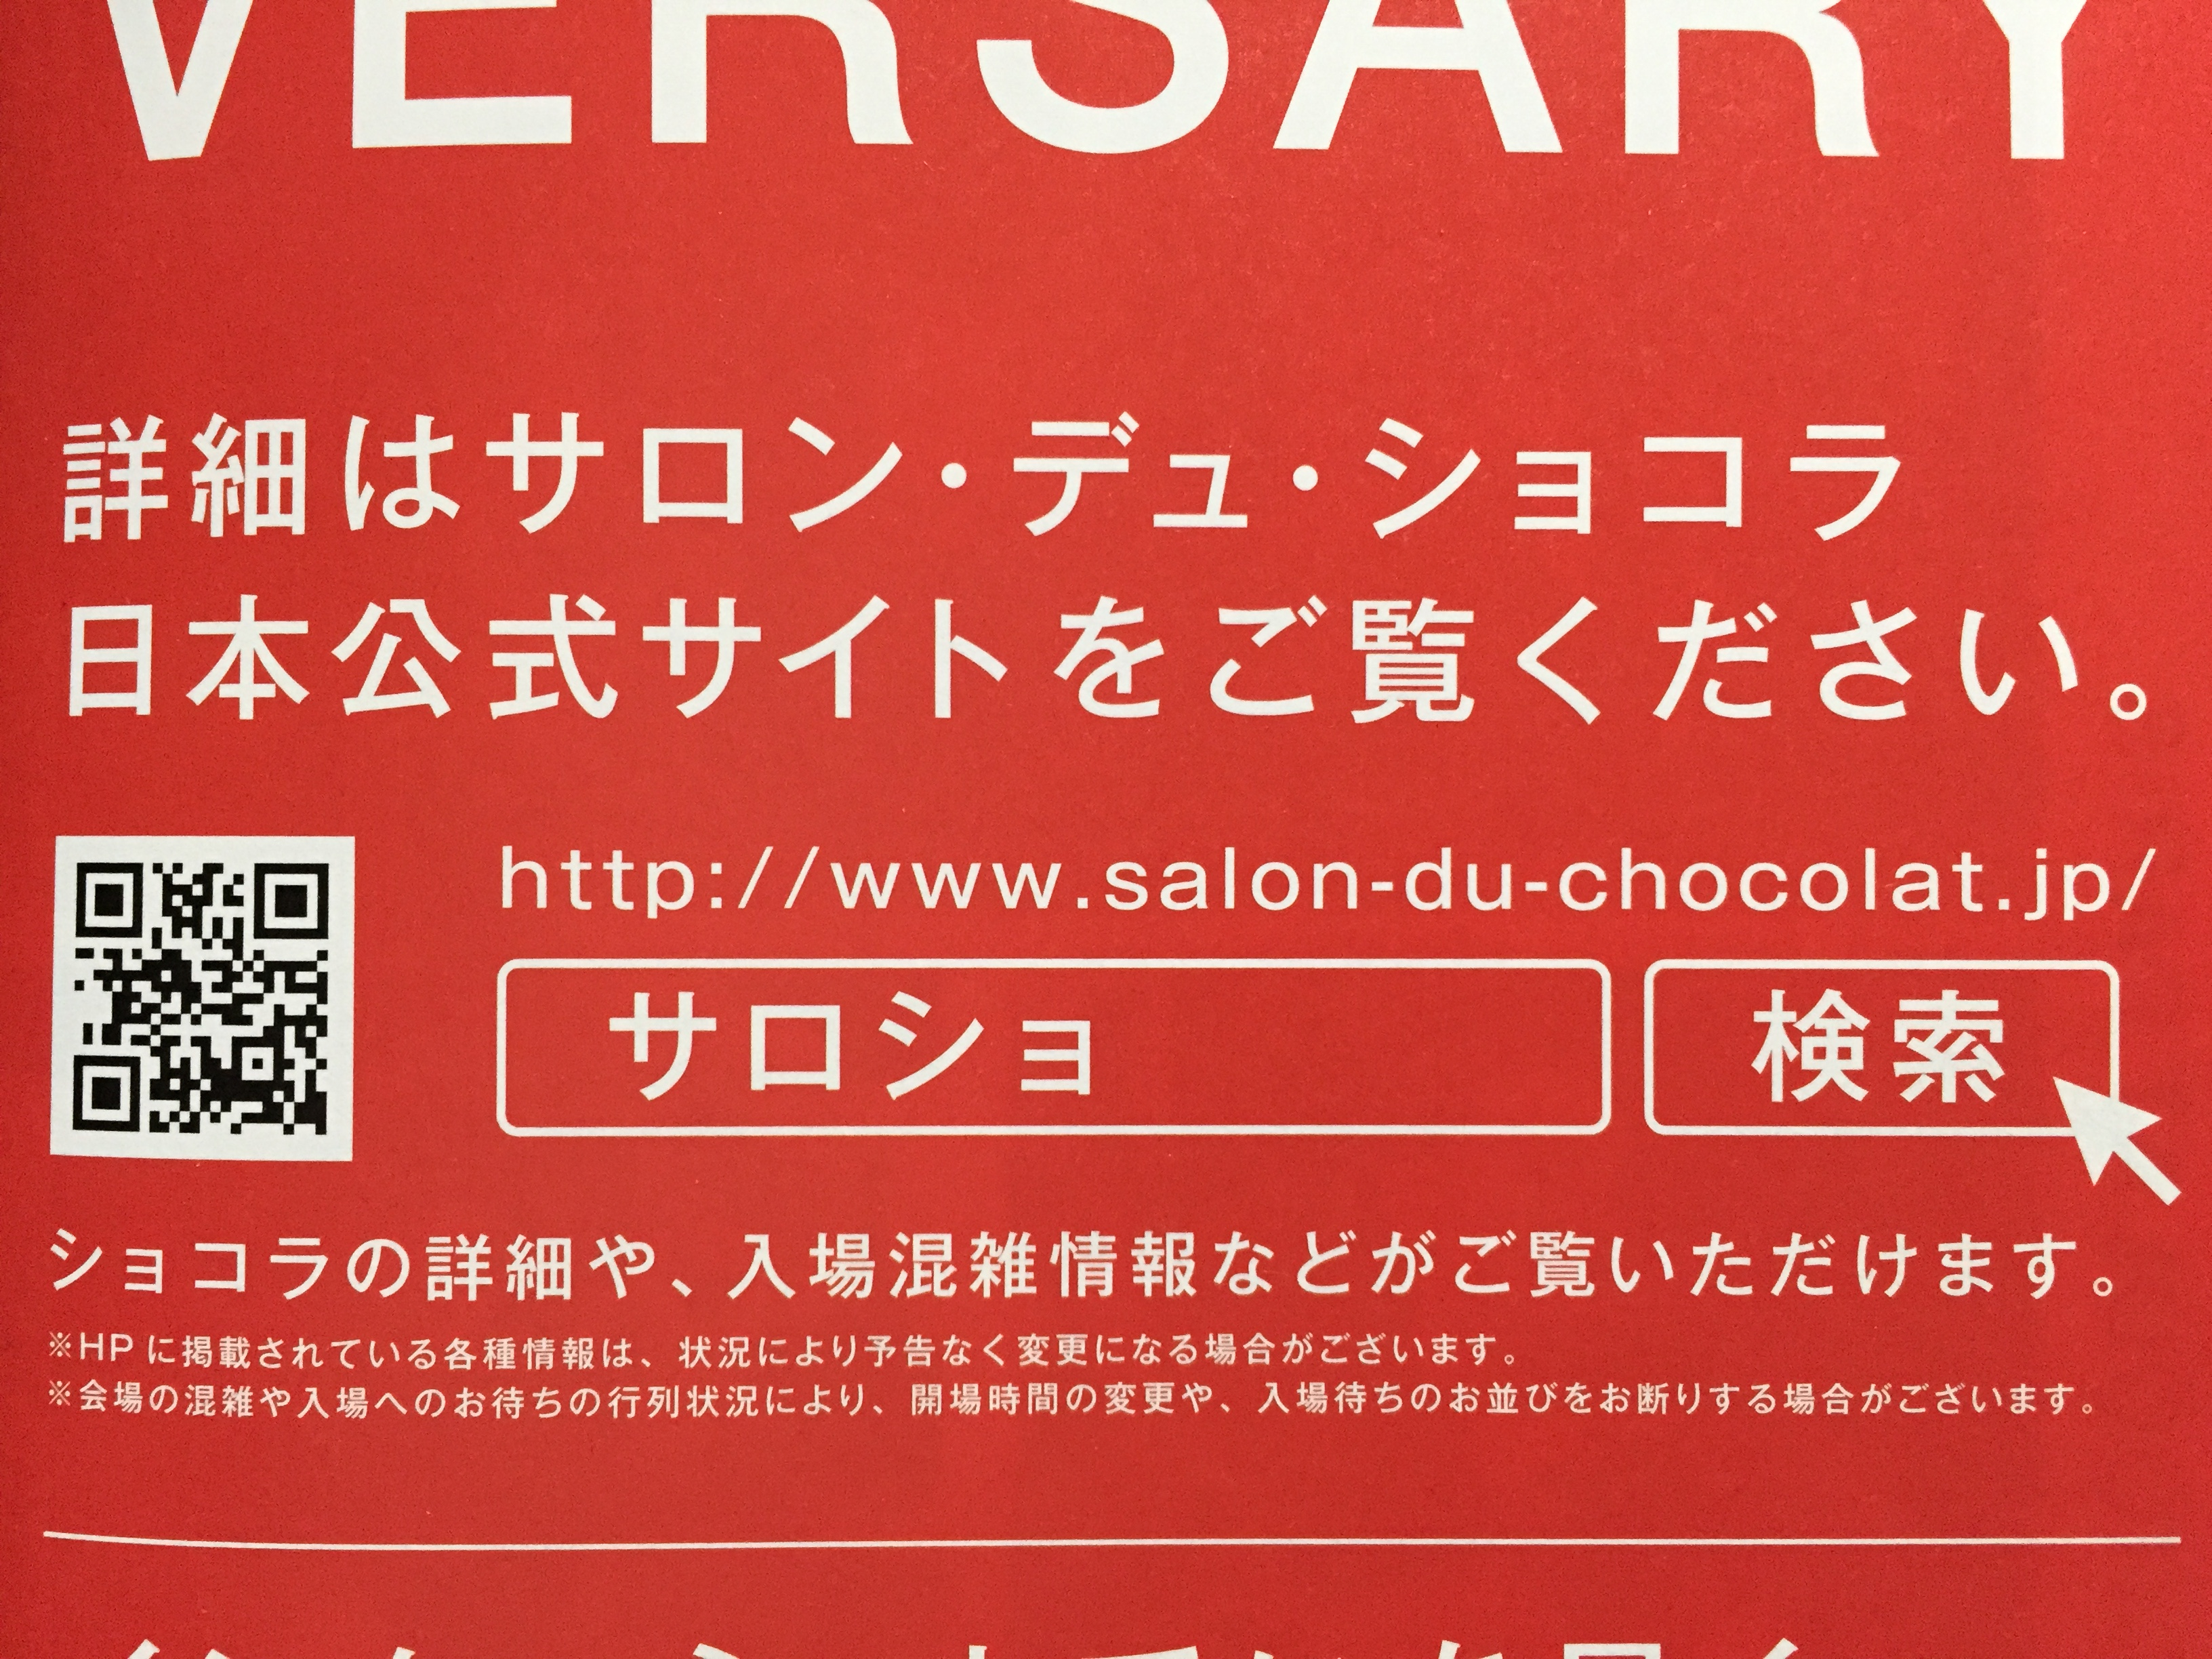 salonduchocolat2017catalog009